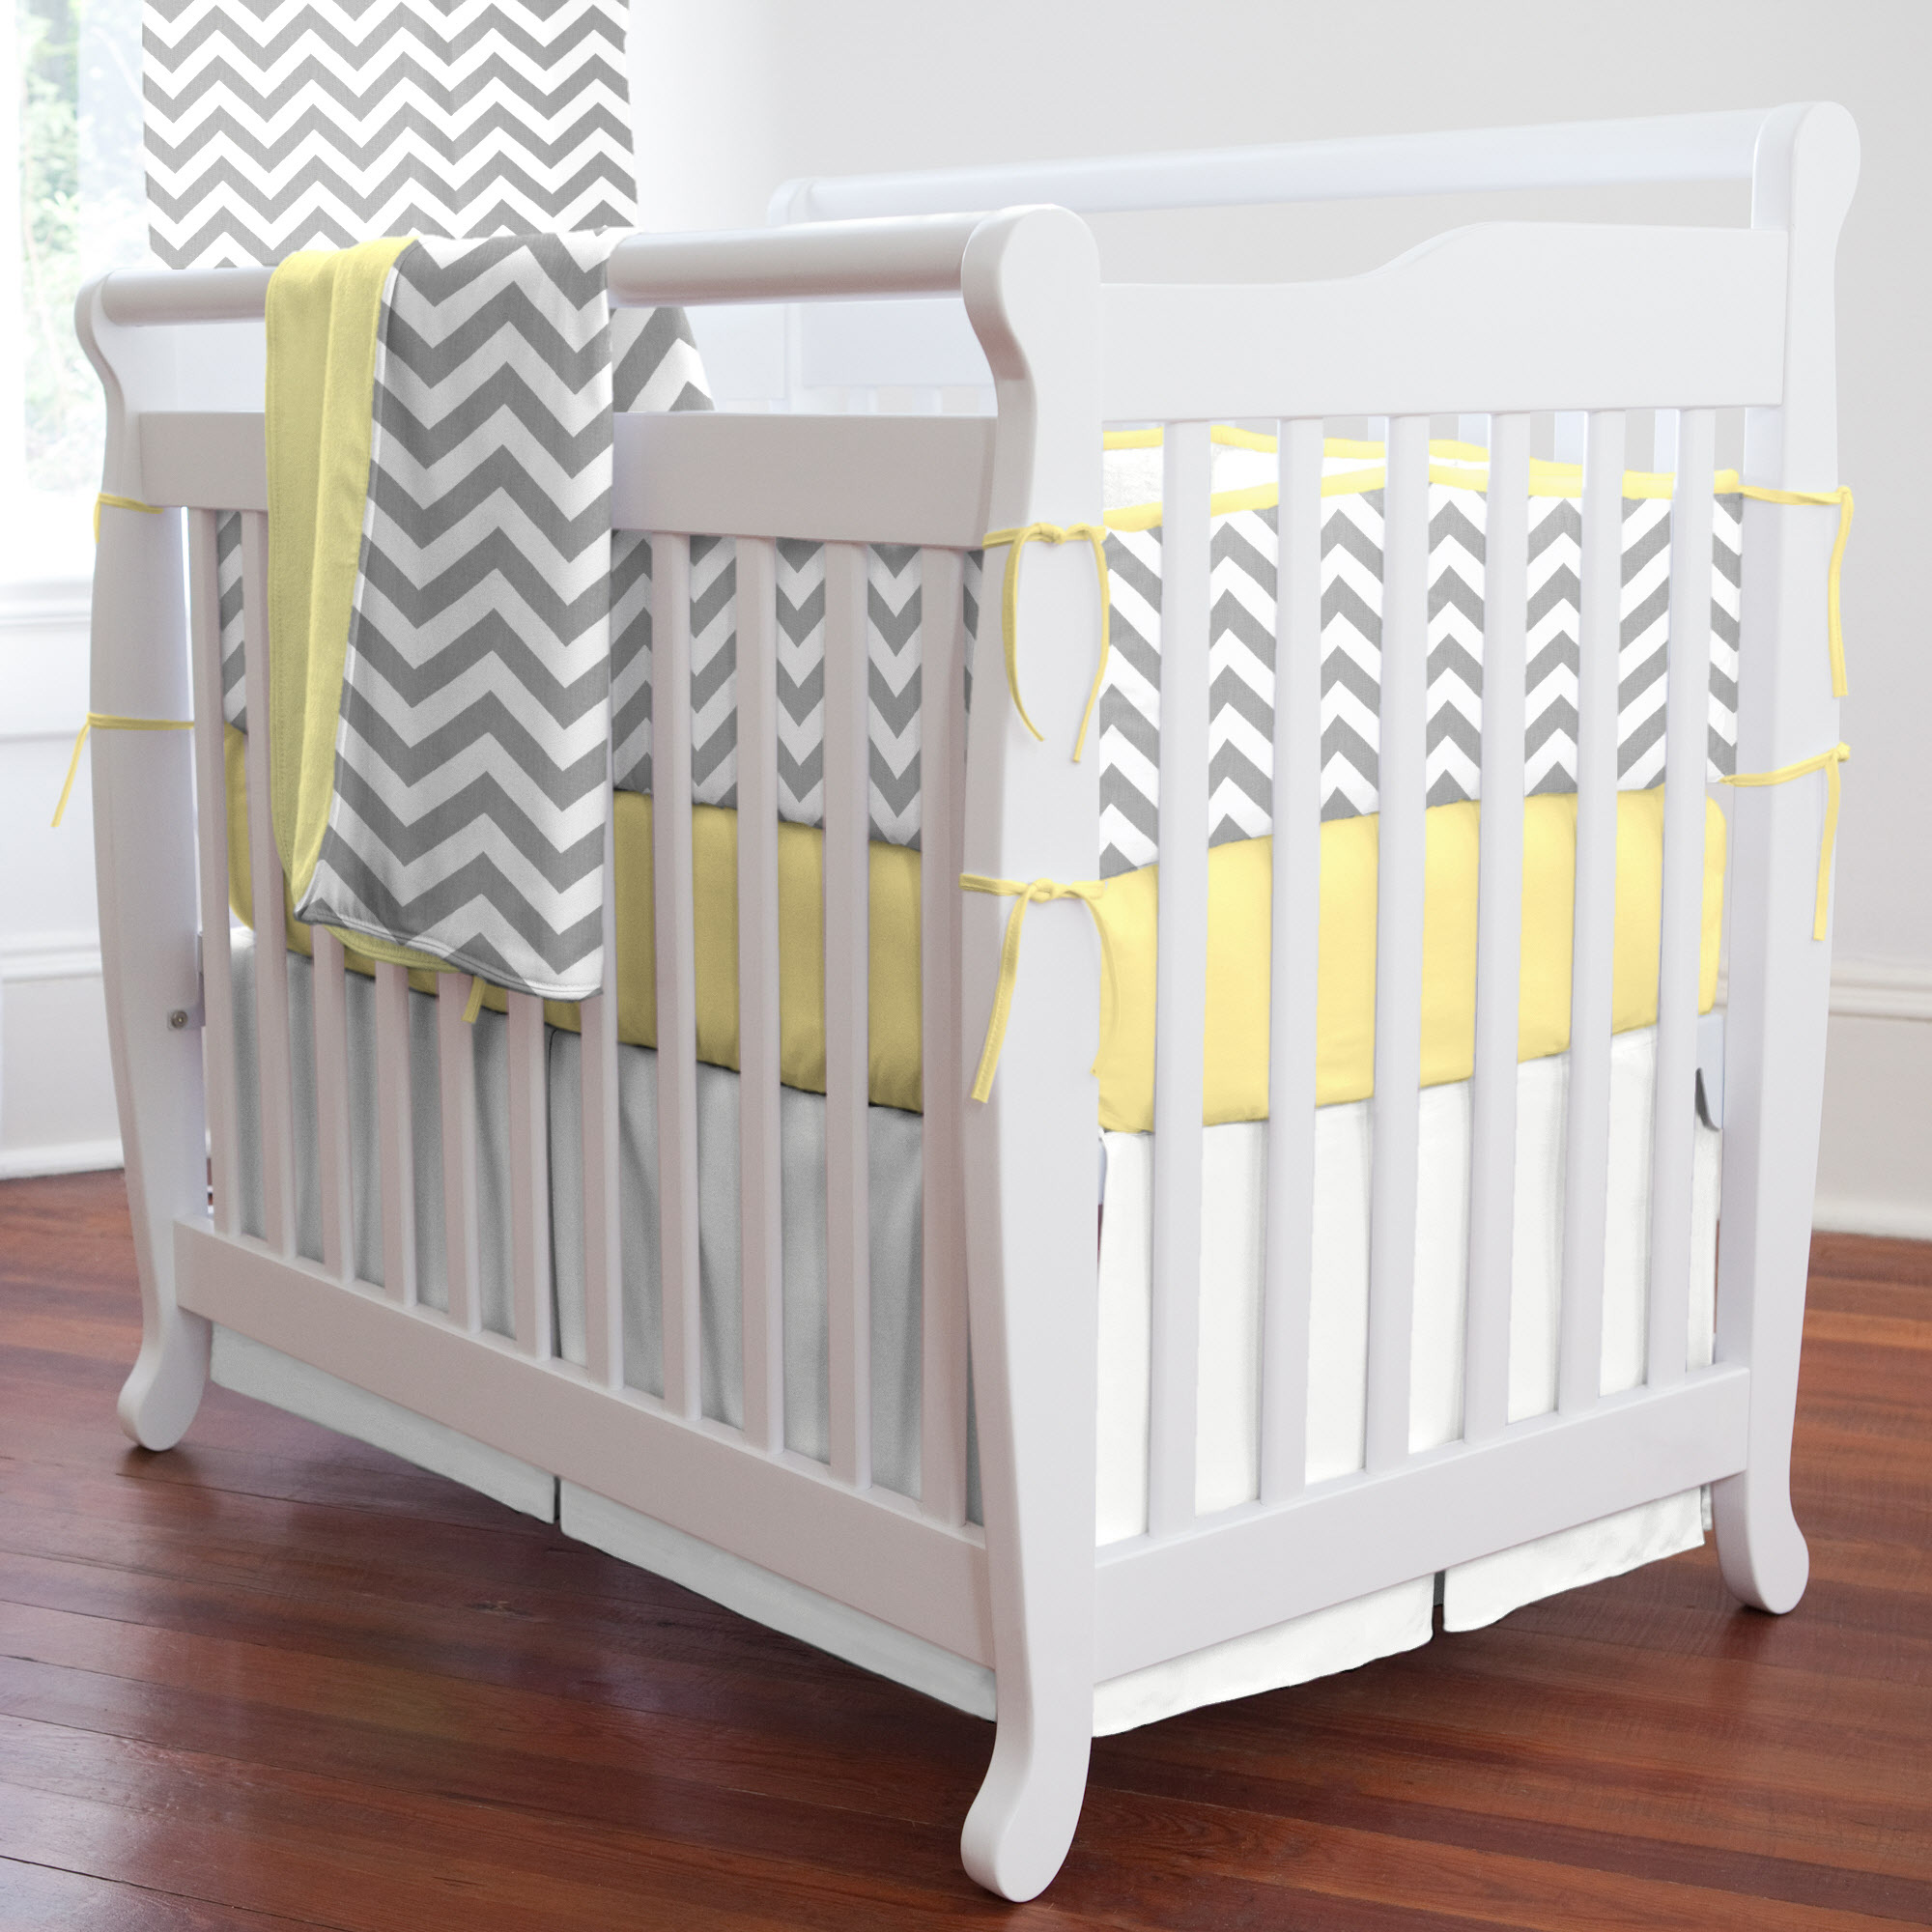 Picture of: Yellow and Gray Nursery Bedding queen